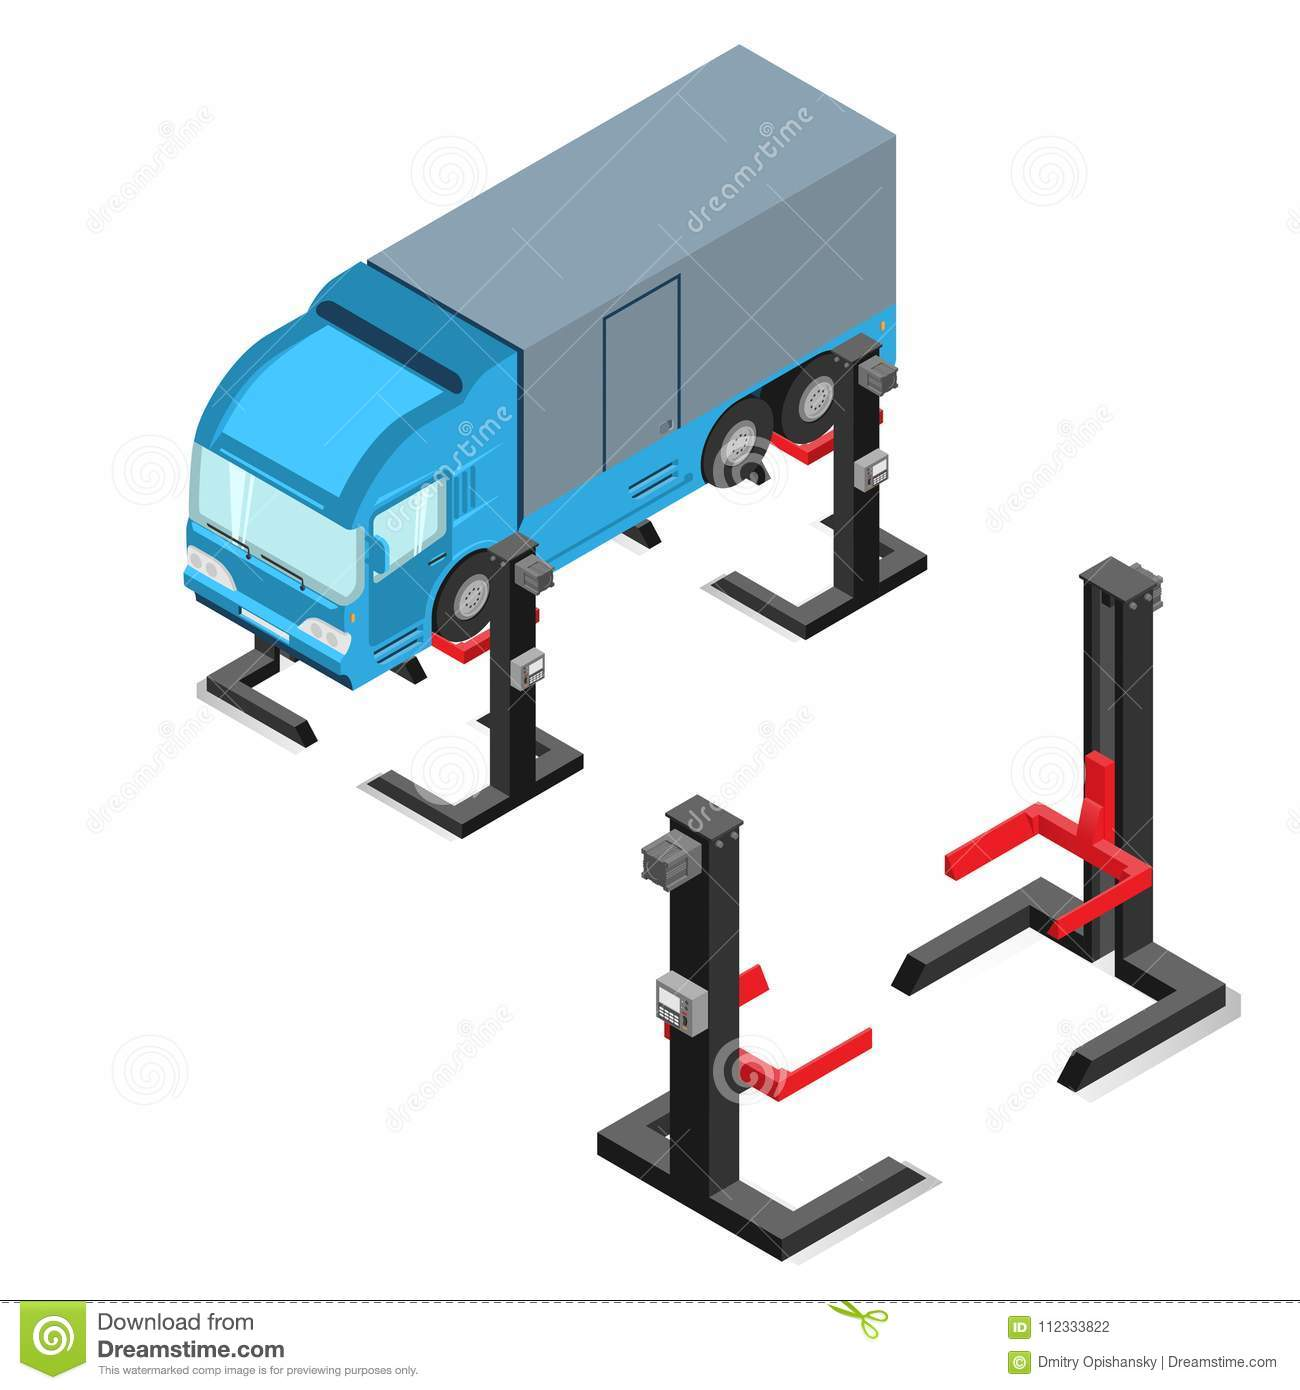 Car Lift, Device For Raising The Car In The Workshop Stock